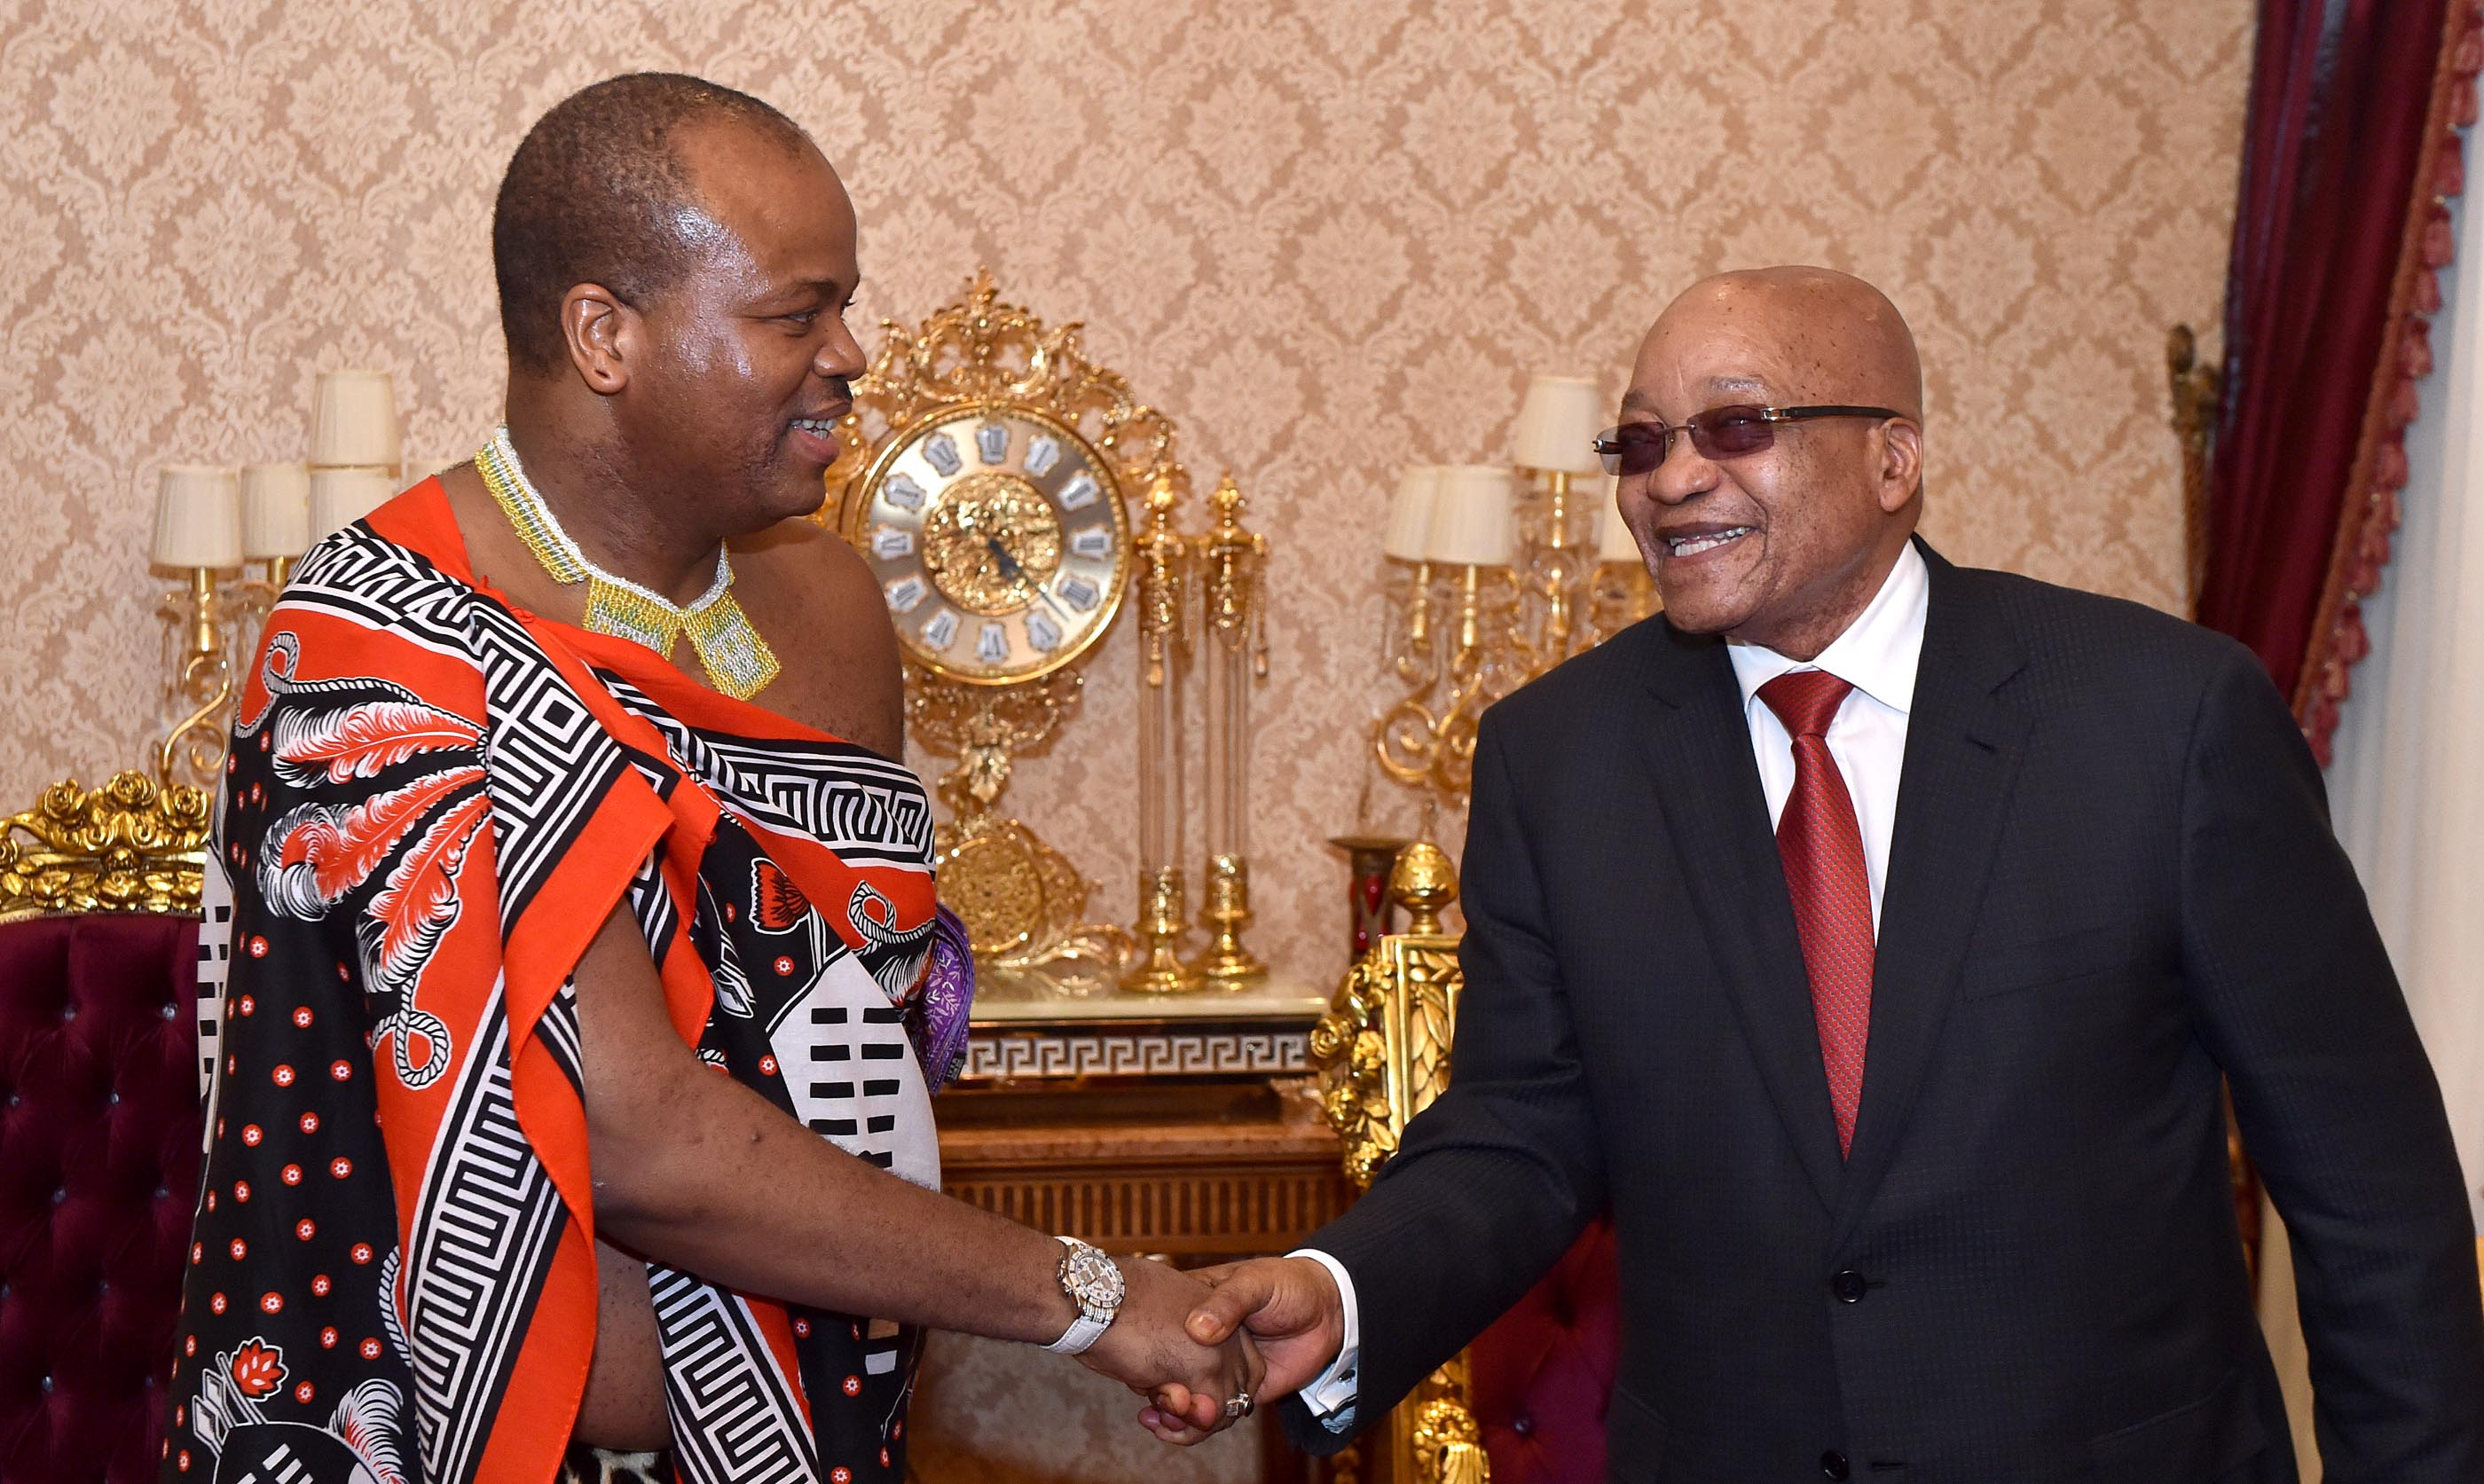 WEB_PHOTO_Zuma_Mswati_230416